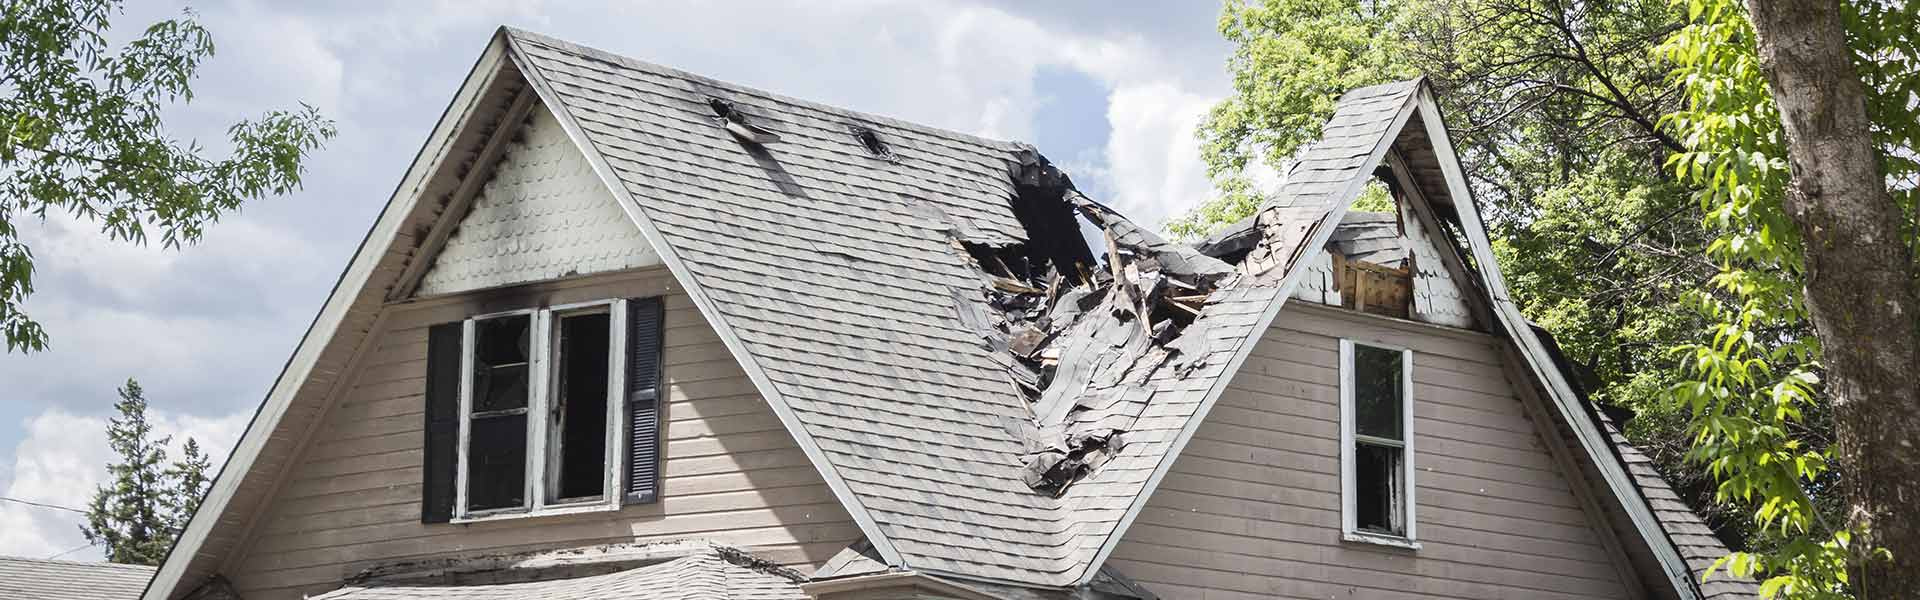 roofing-replacement-palatine